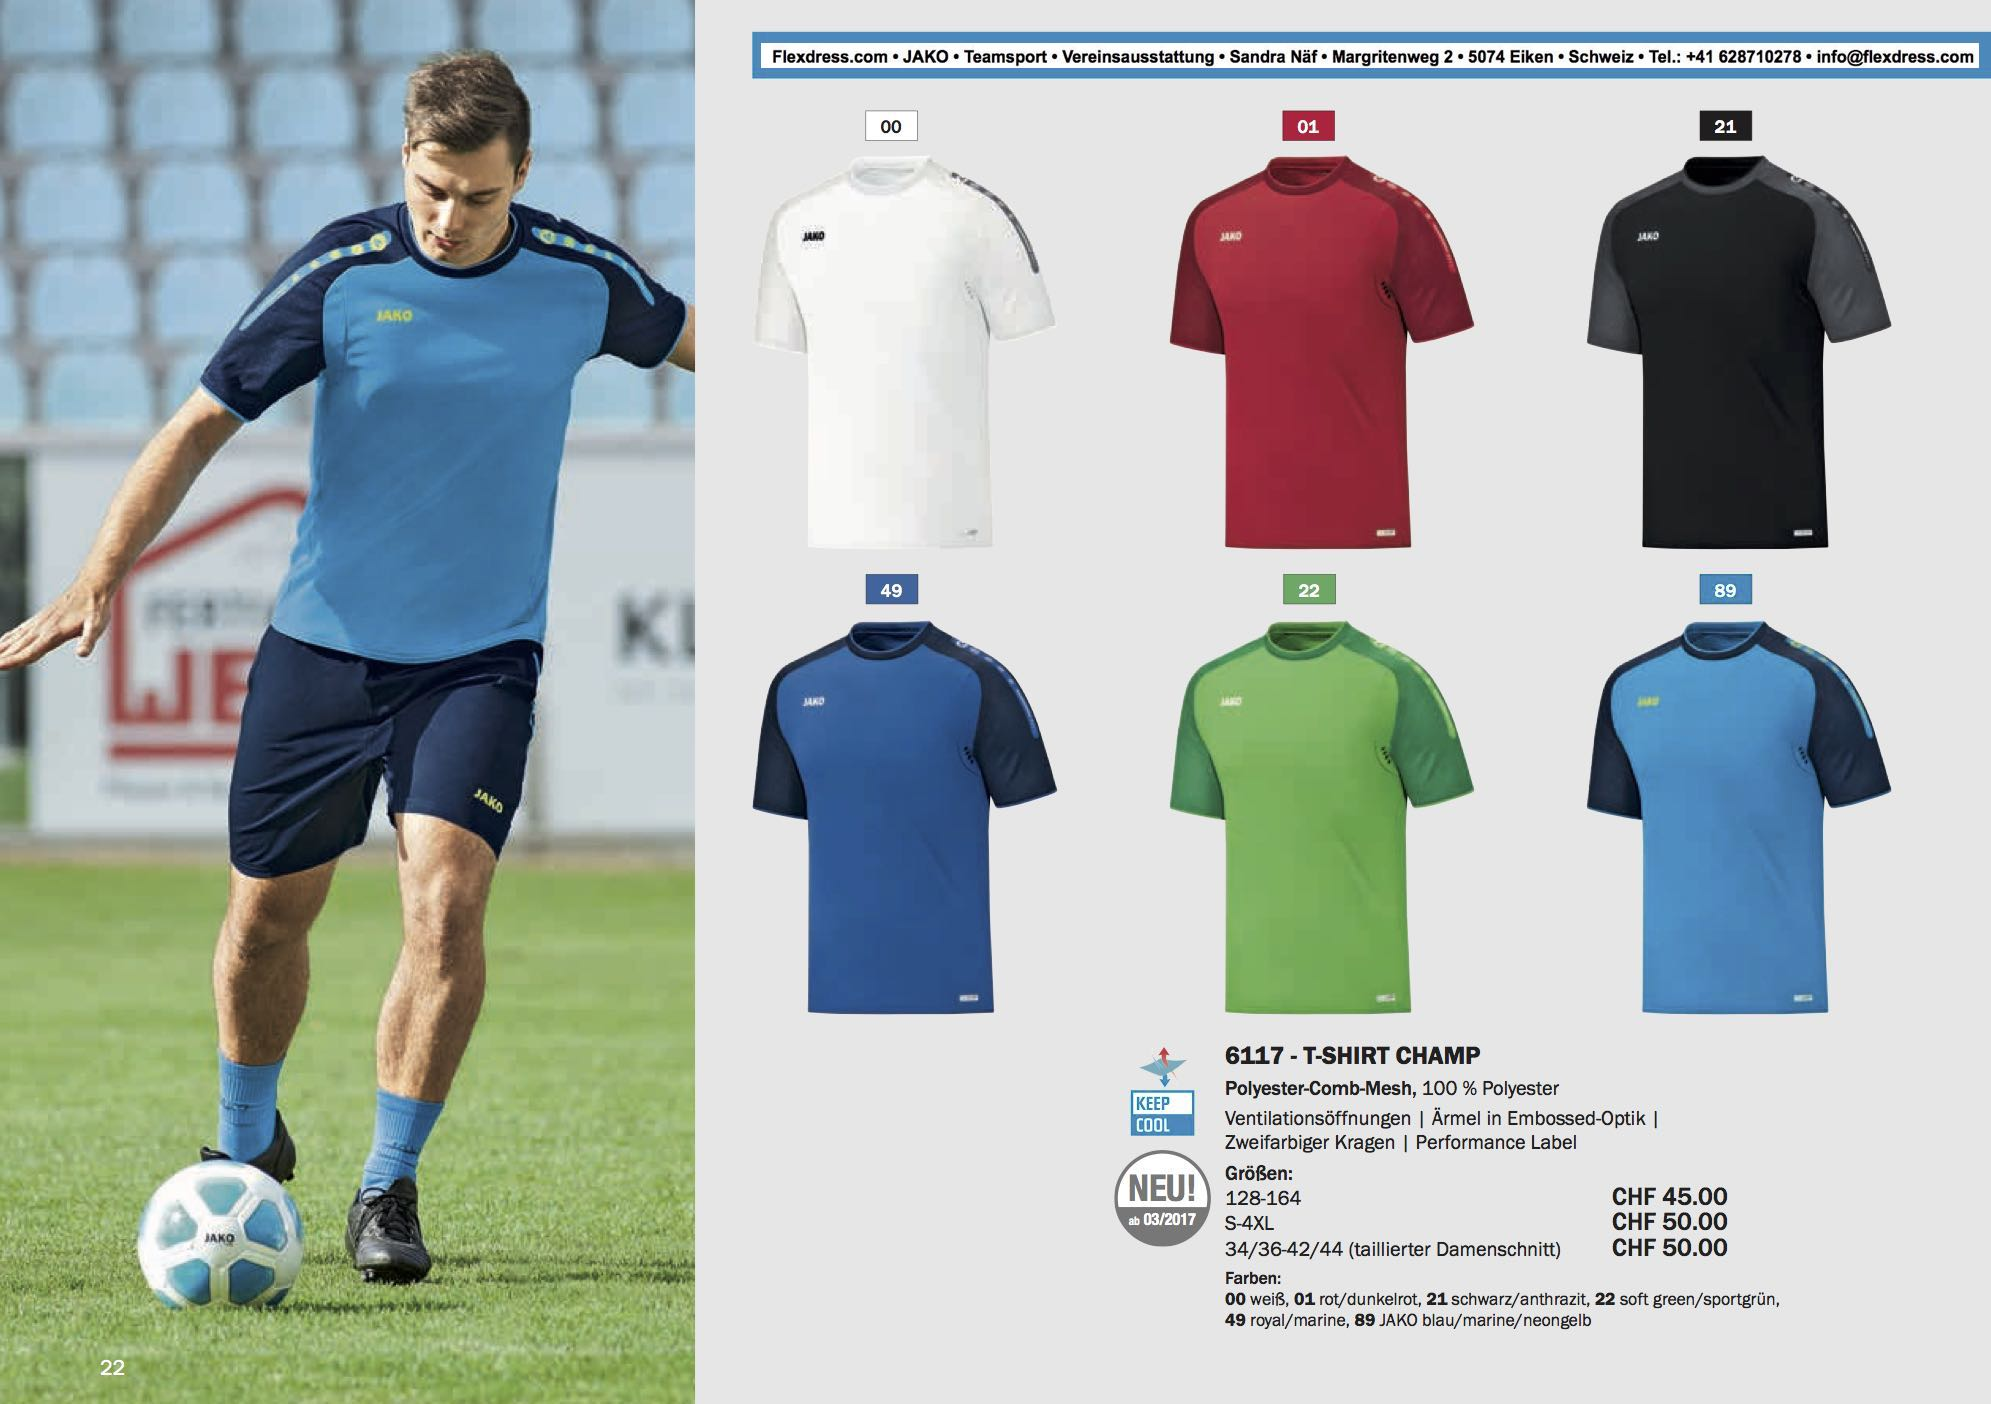 competitive price b7dbe 946ef JAKO Teamsport Katalog 2017 024 Champ T-Shirt bedrucken ...